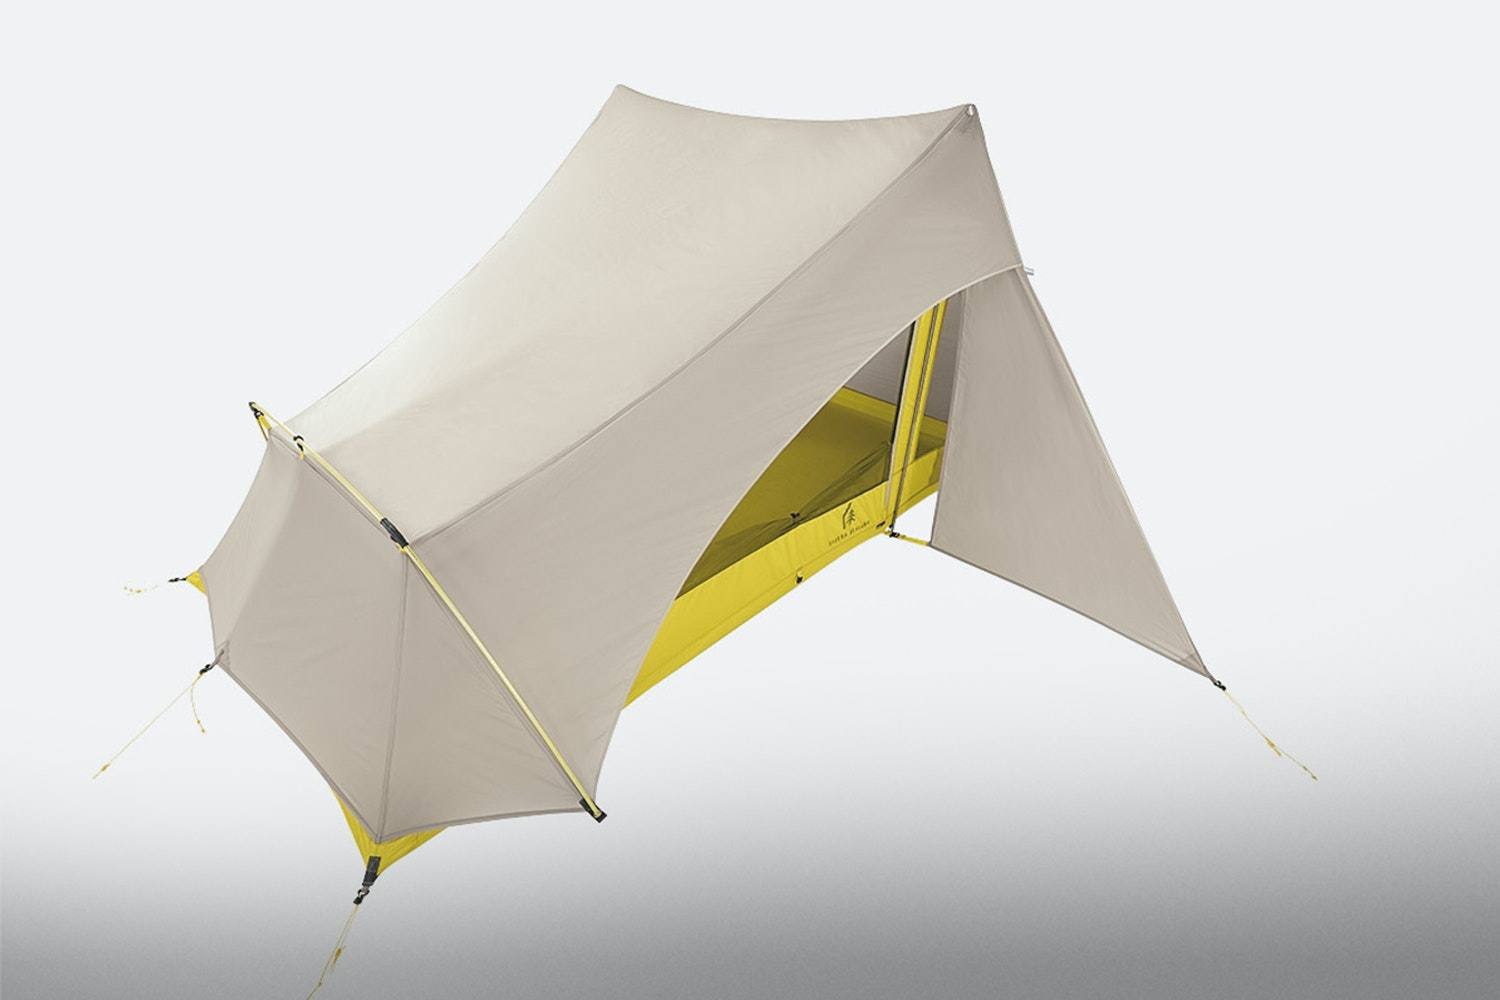 Sierra Designs Flashlight Tents